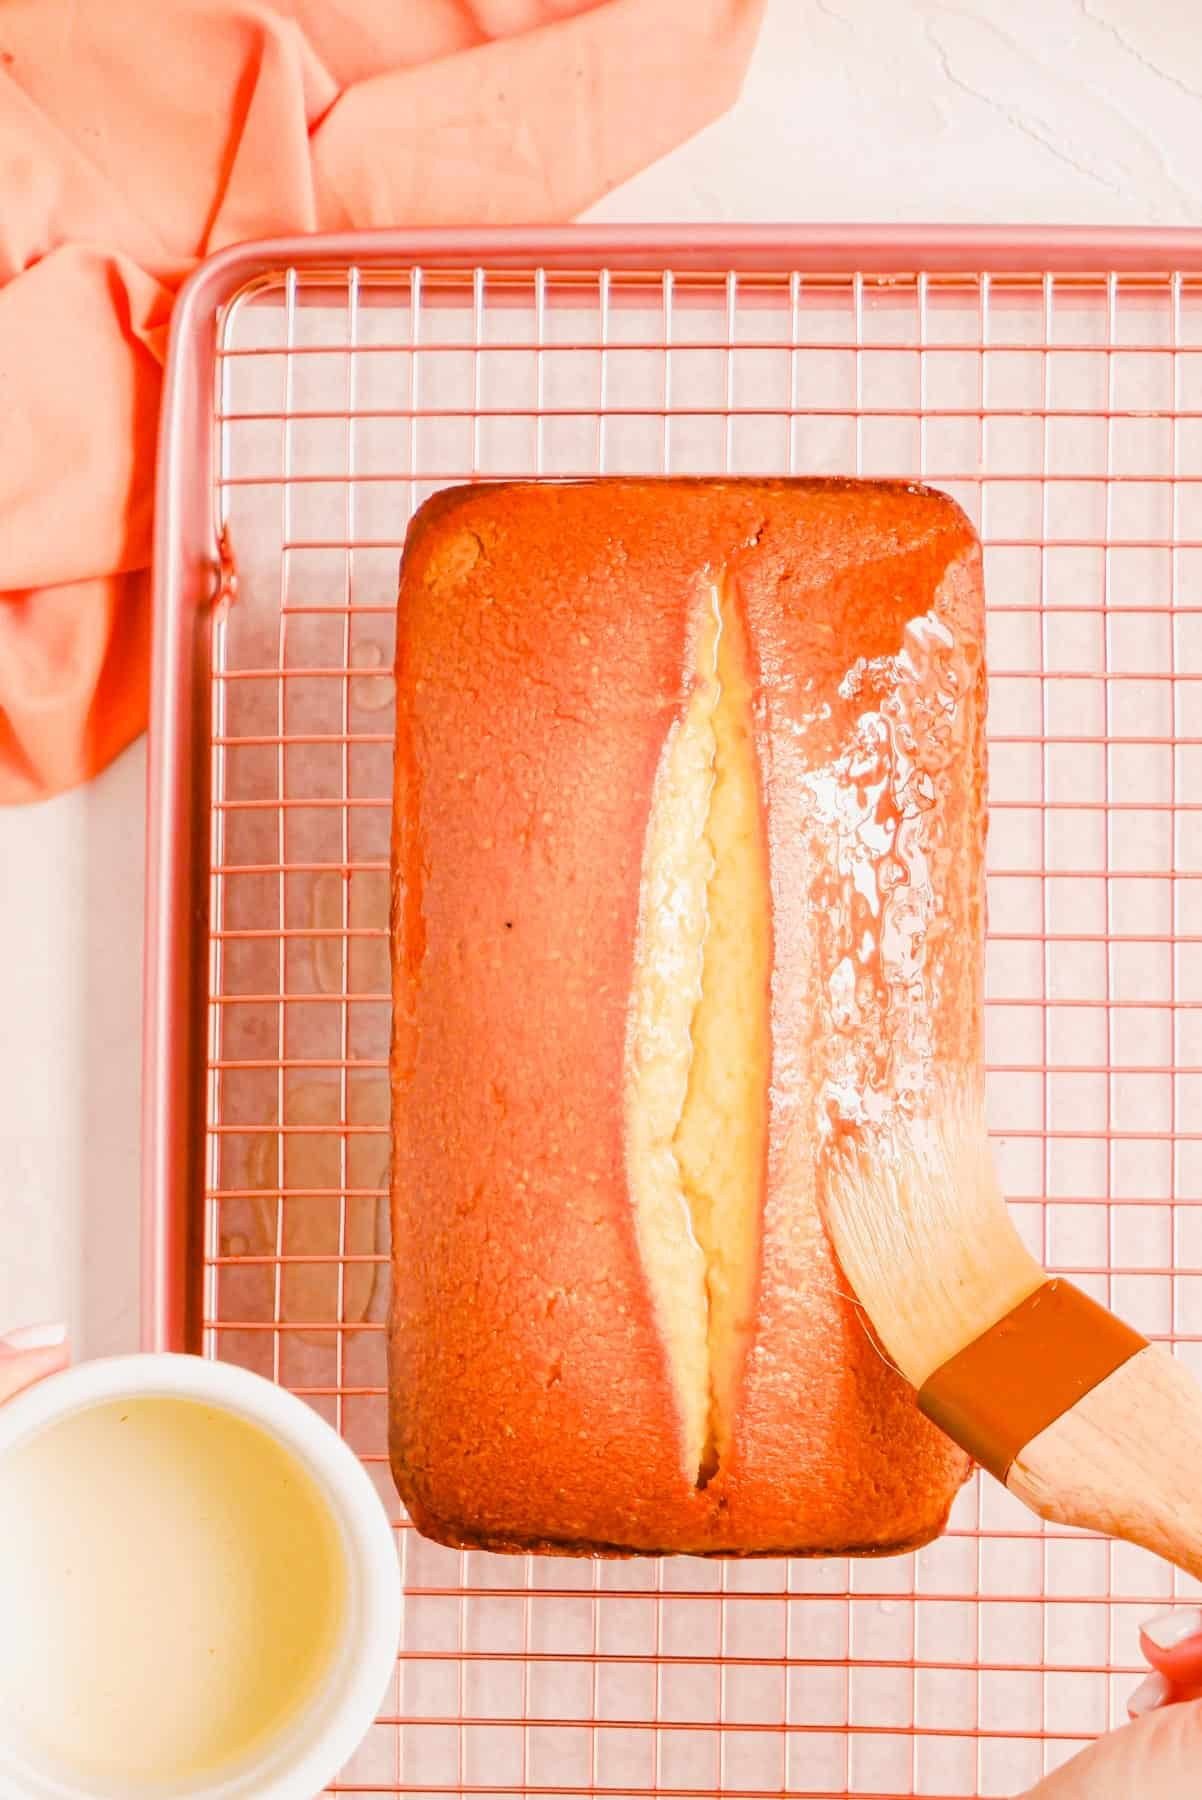 a hand actively glazing a baked pound cake with lemon glaze form a bowl in the corner